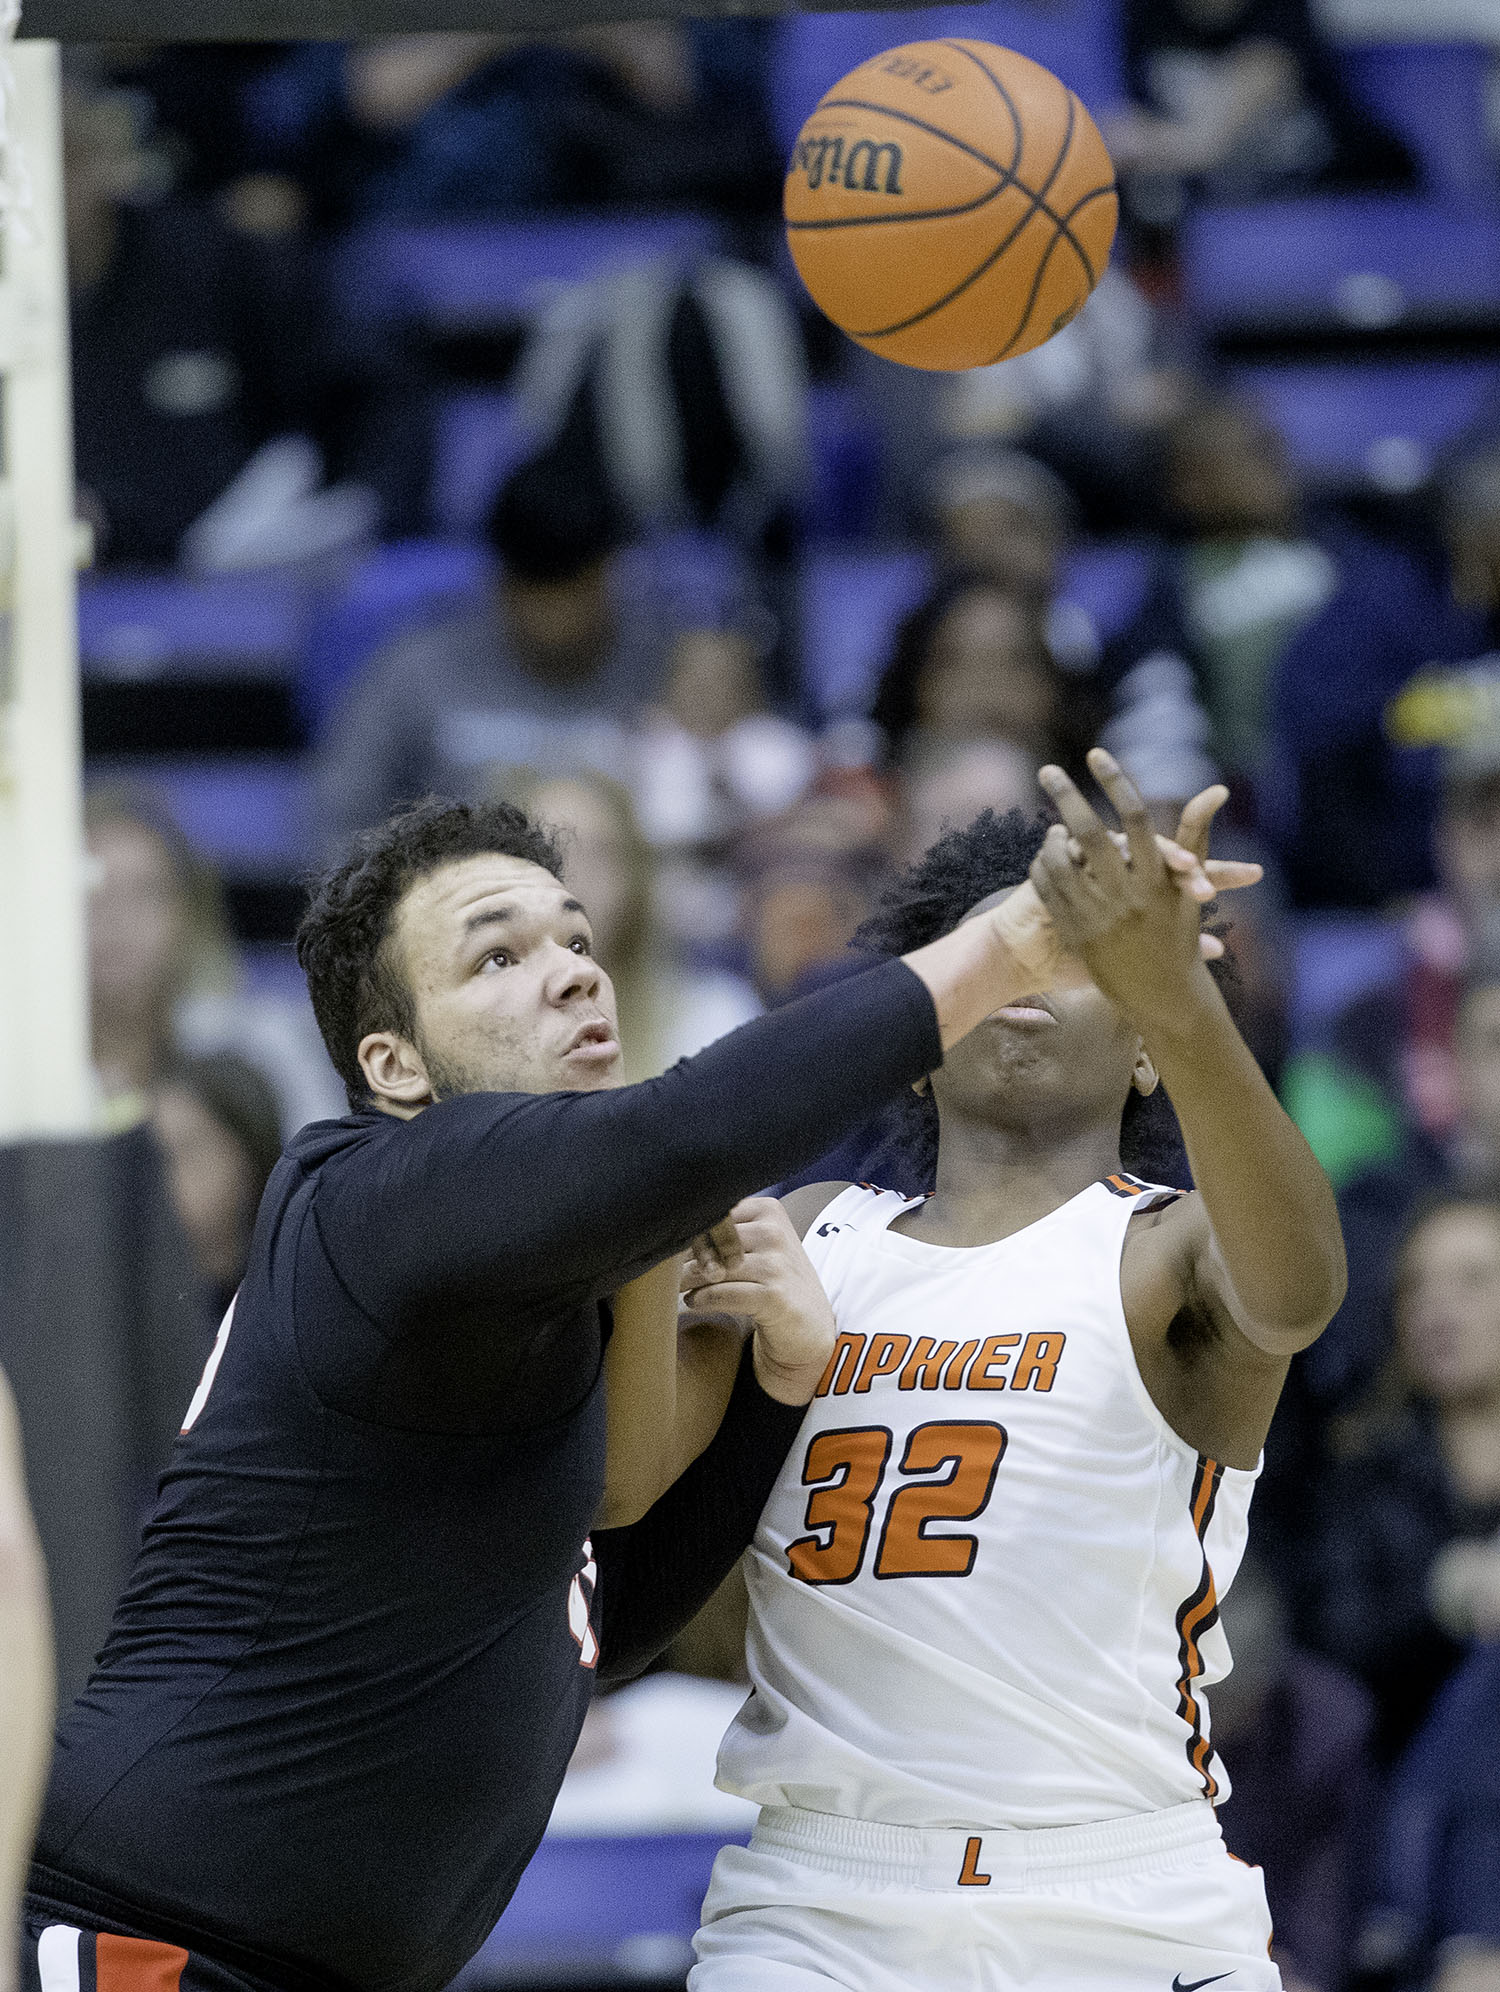 Springfield's Nate Borders and Lanphier's KJ Deberick fight for a rebound during the Boys City Tournament at the Bank of Springfield Center Friday, Jan. 18, 2019.  [Ted Schurter/The State Journal-Register]